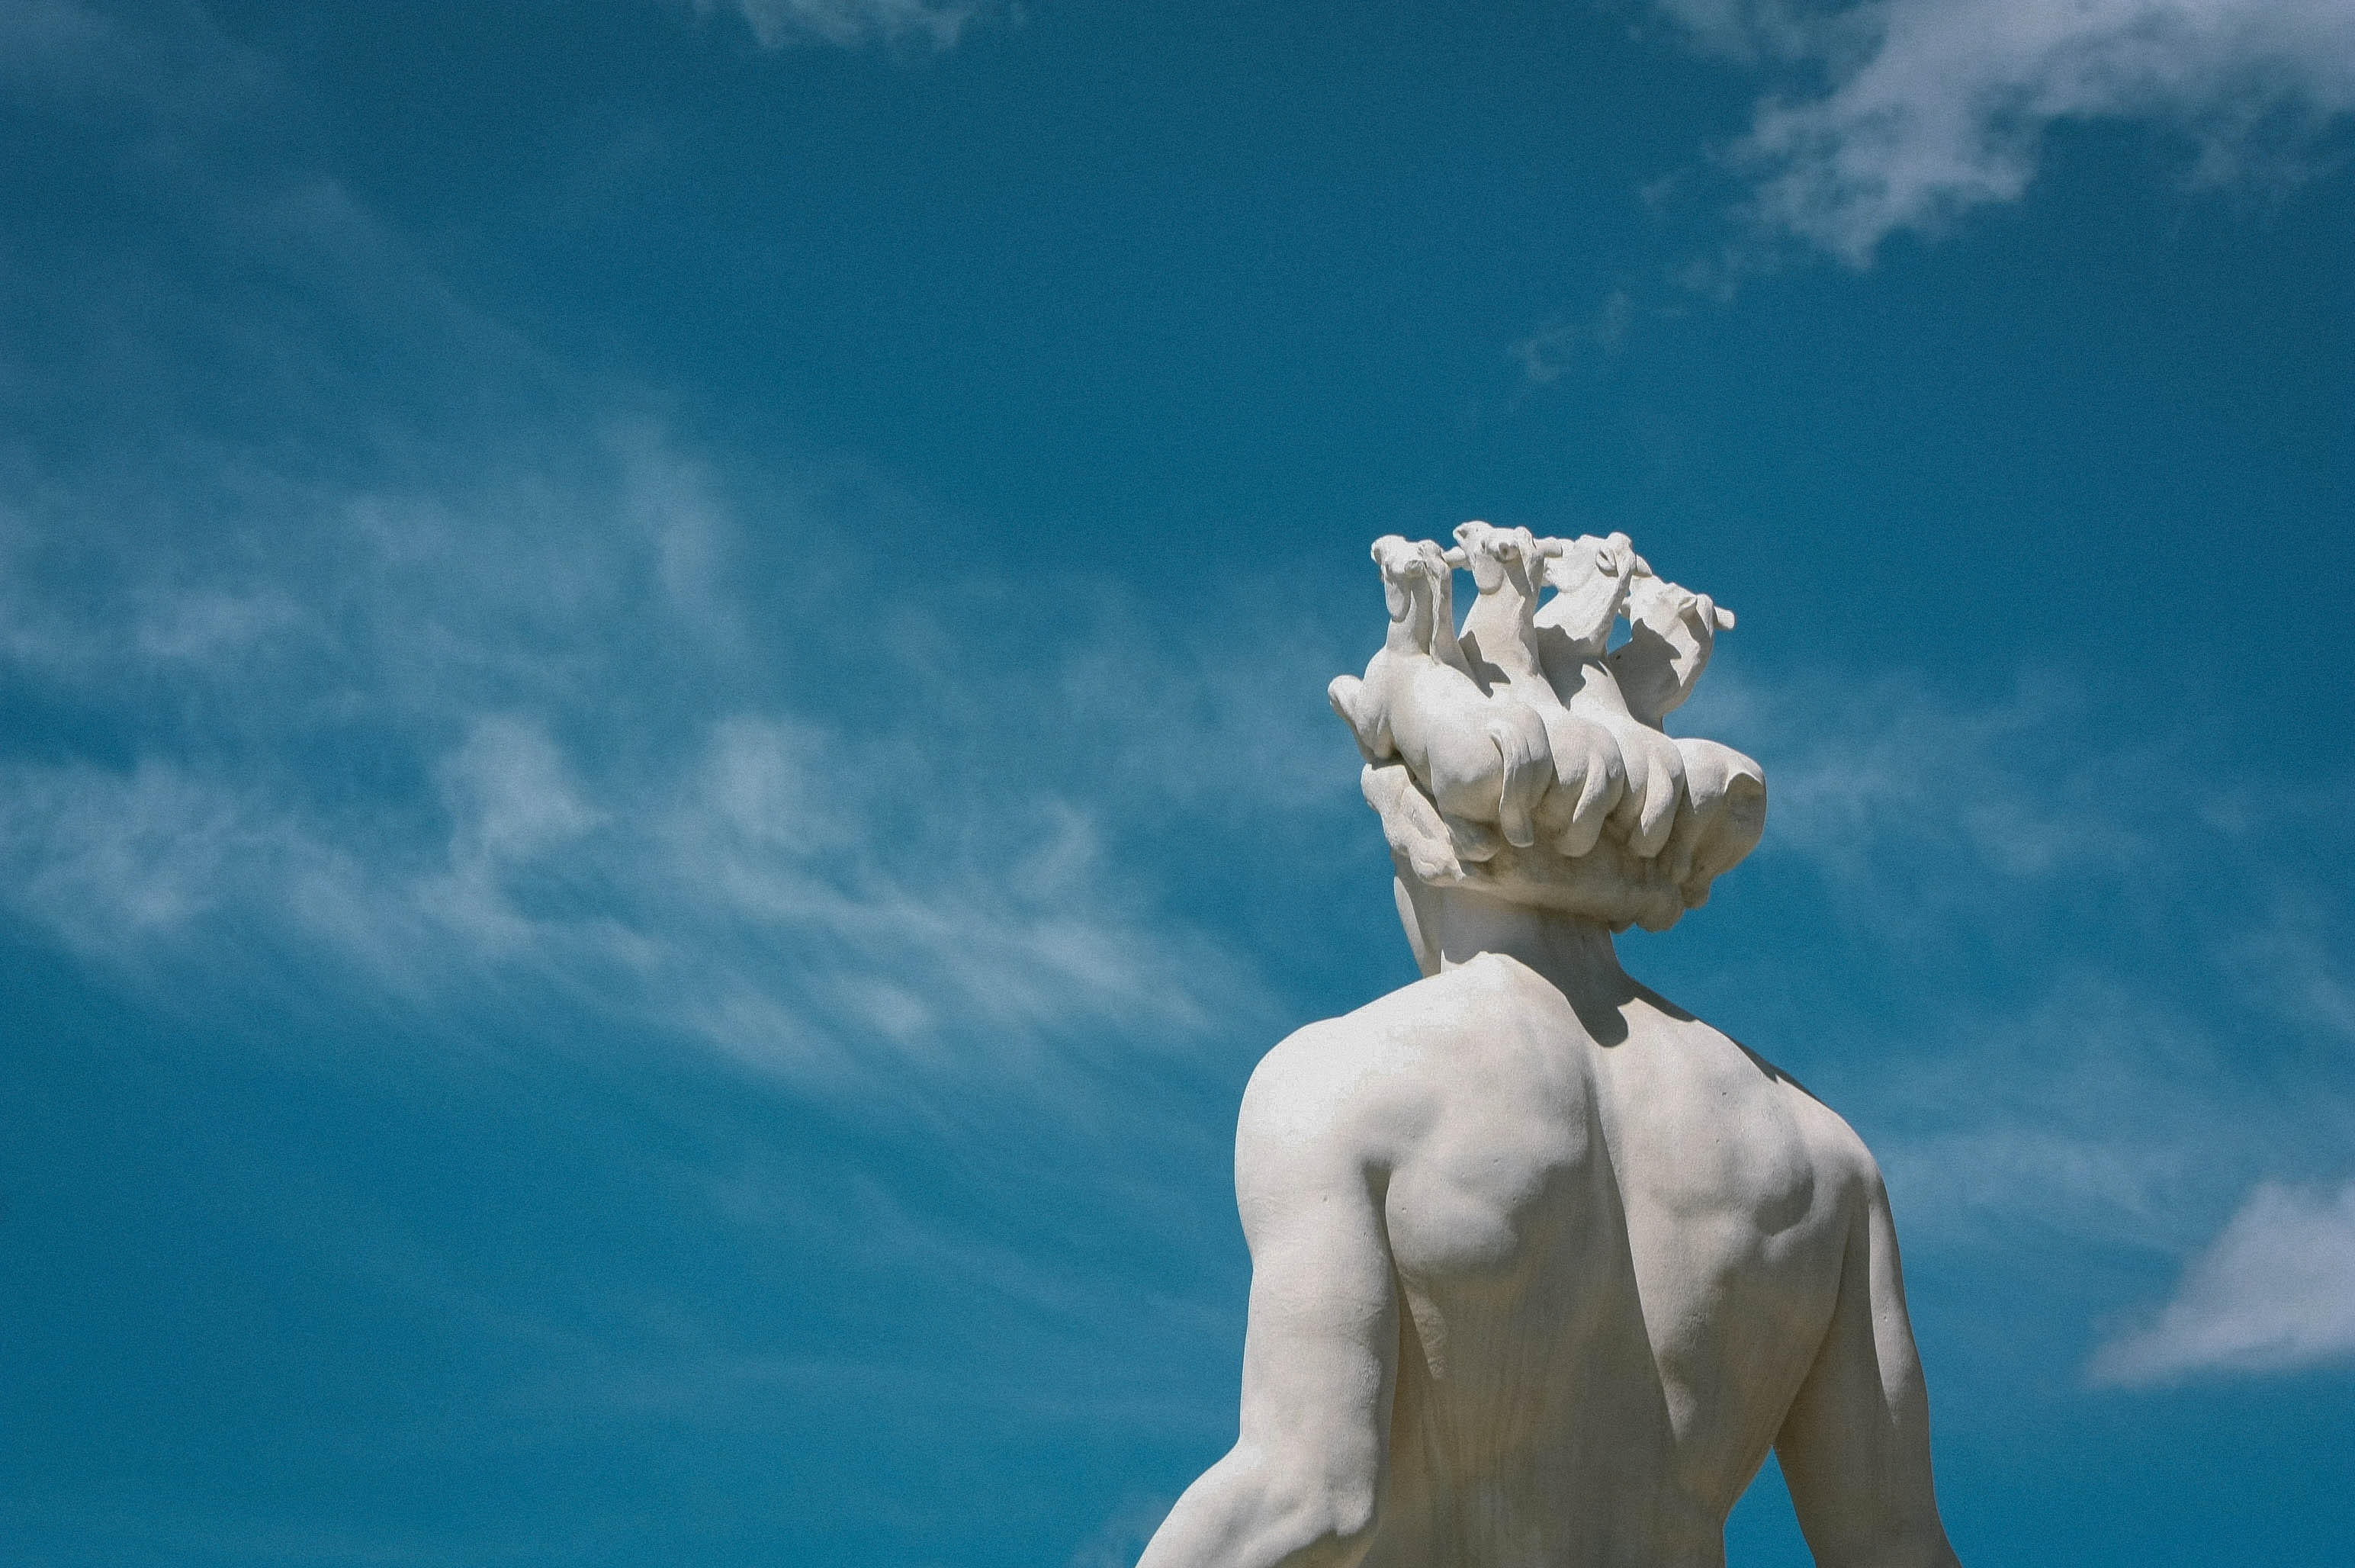 Back view of a human statue under a clear sky